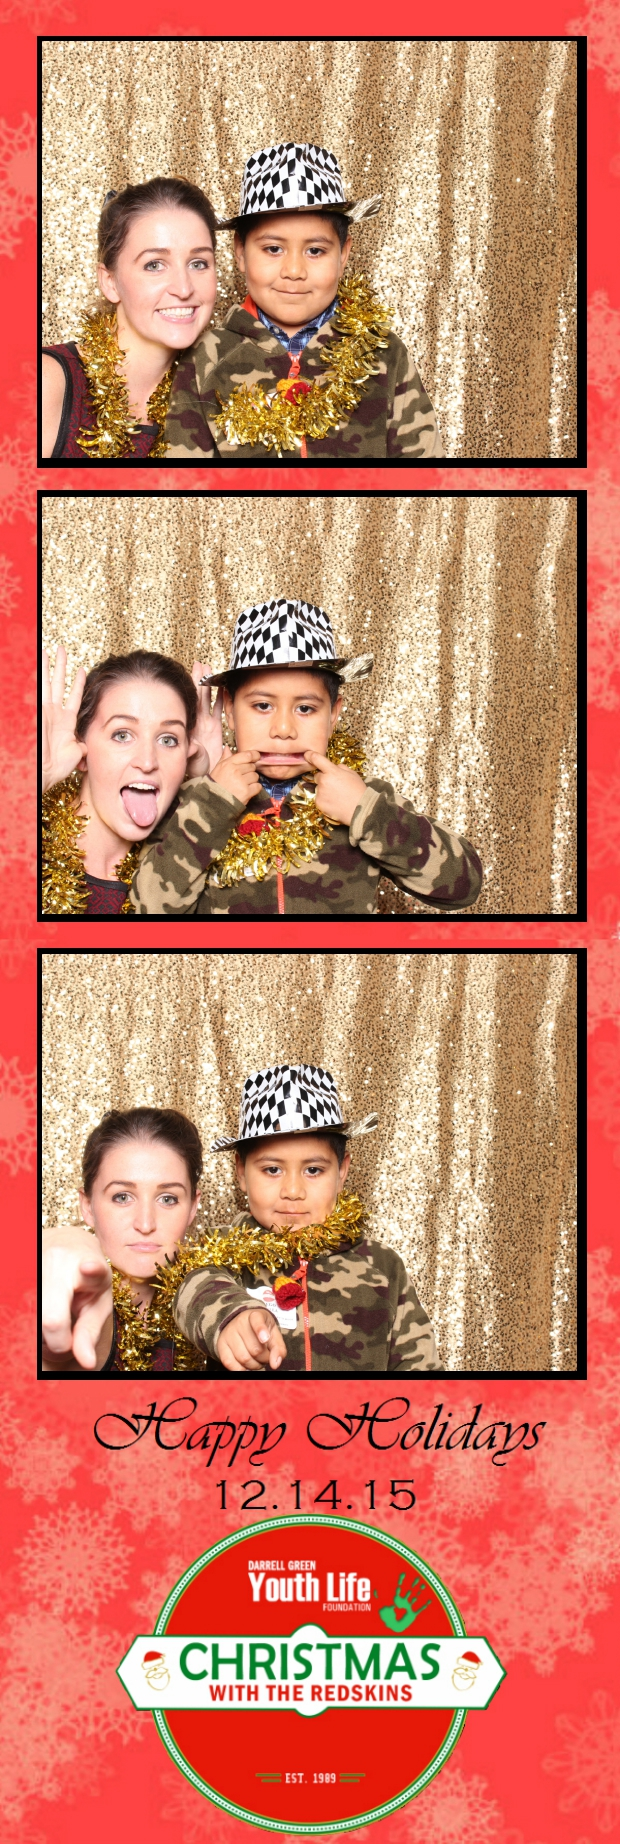 Guest House Events Photo Booth DGYLF Strips (34).jpg